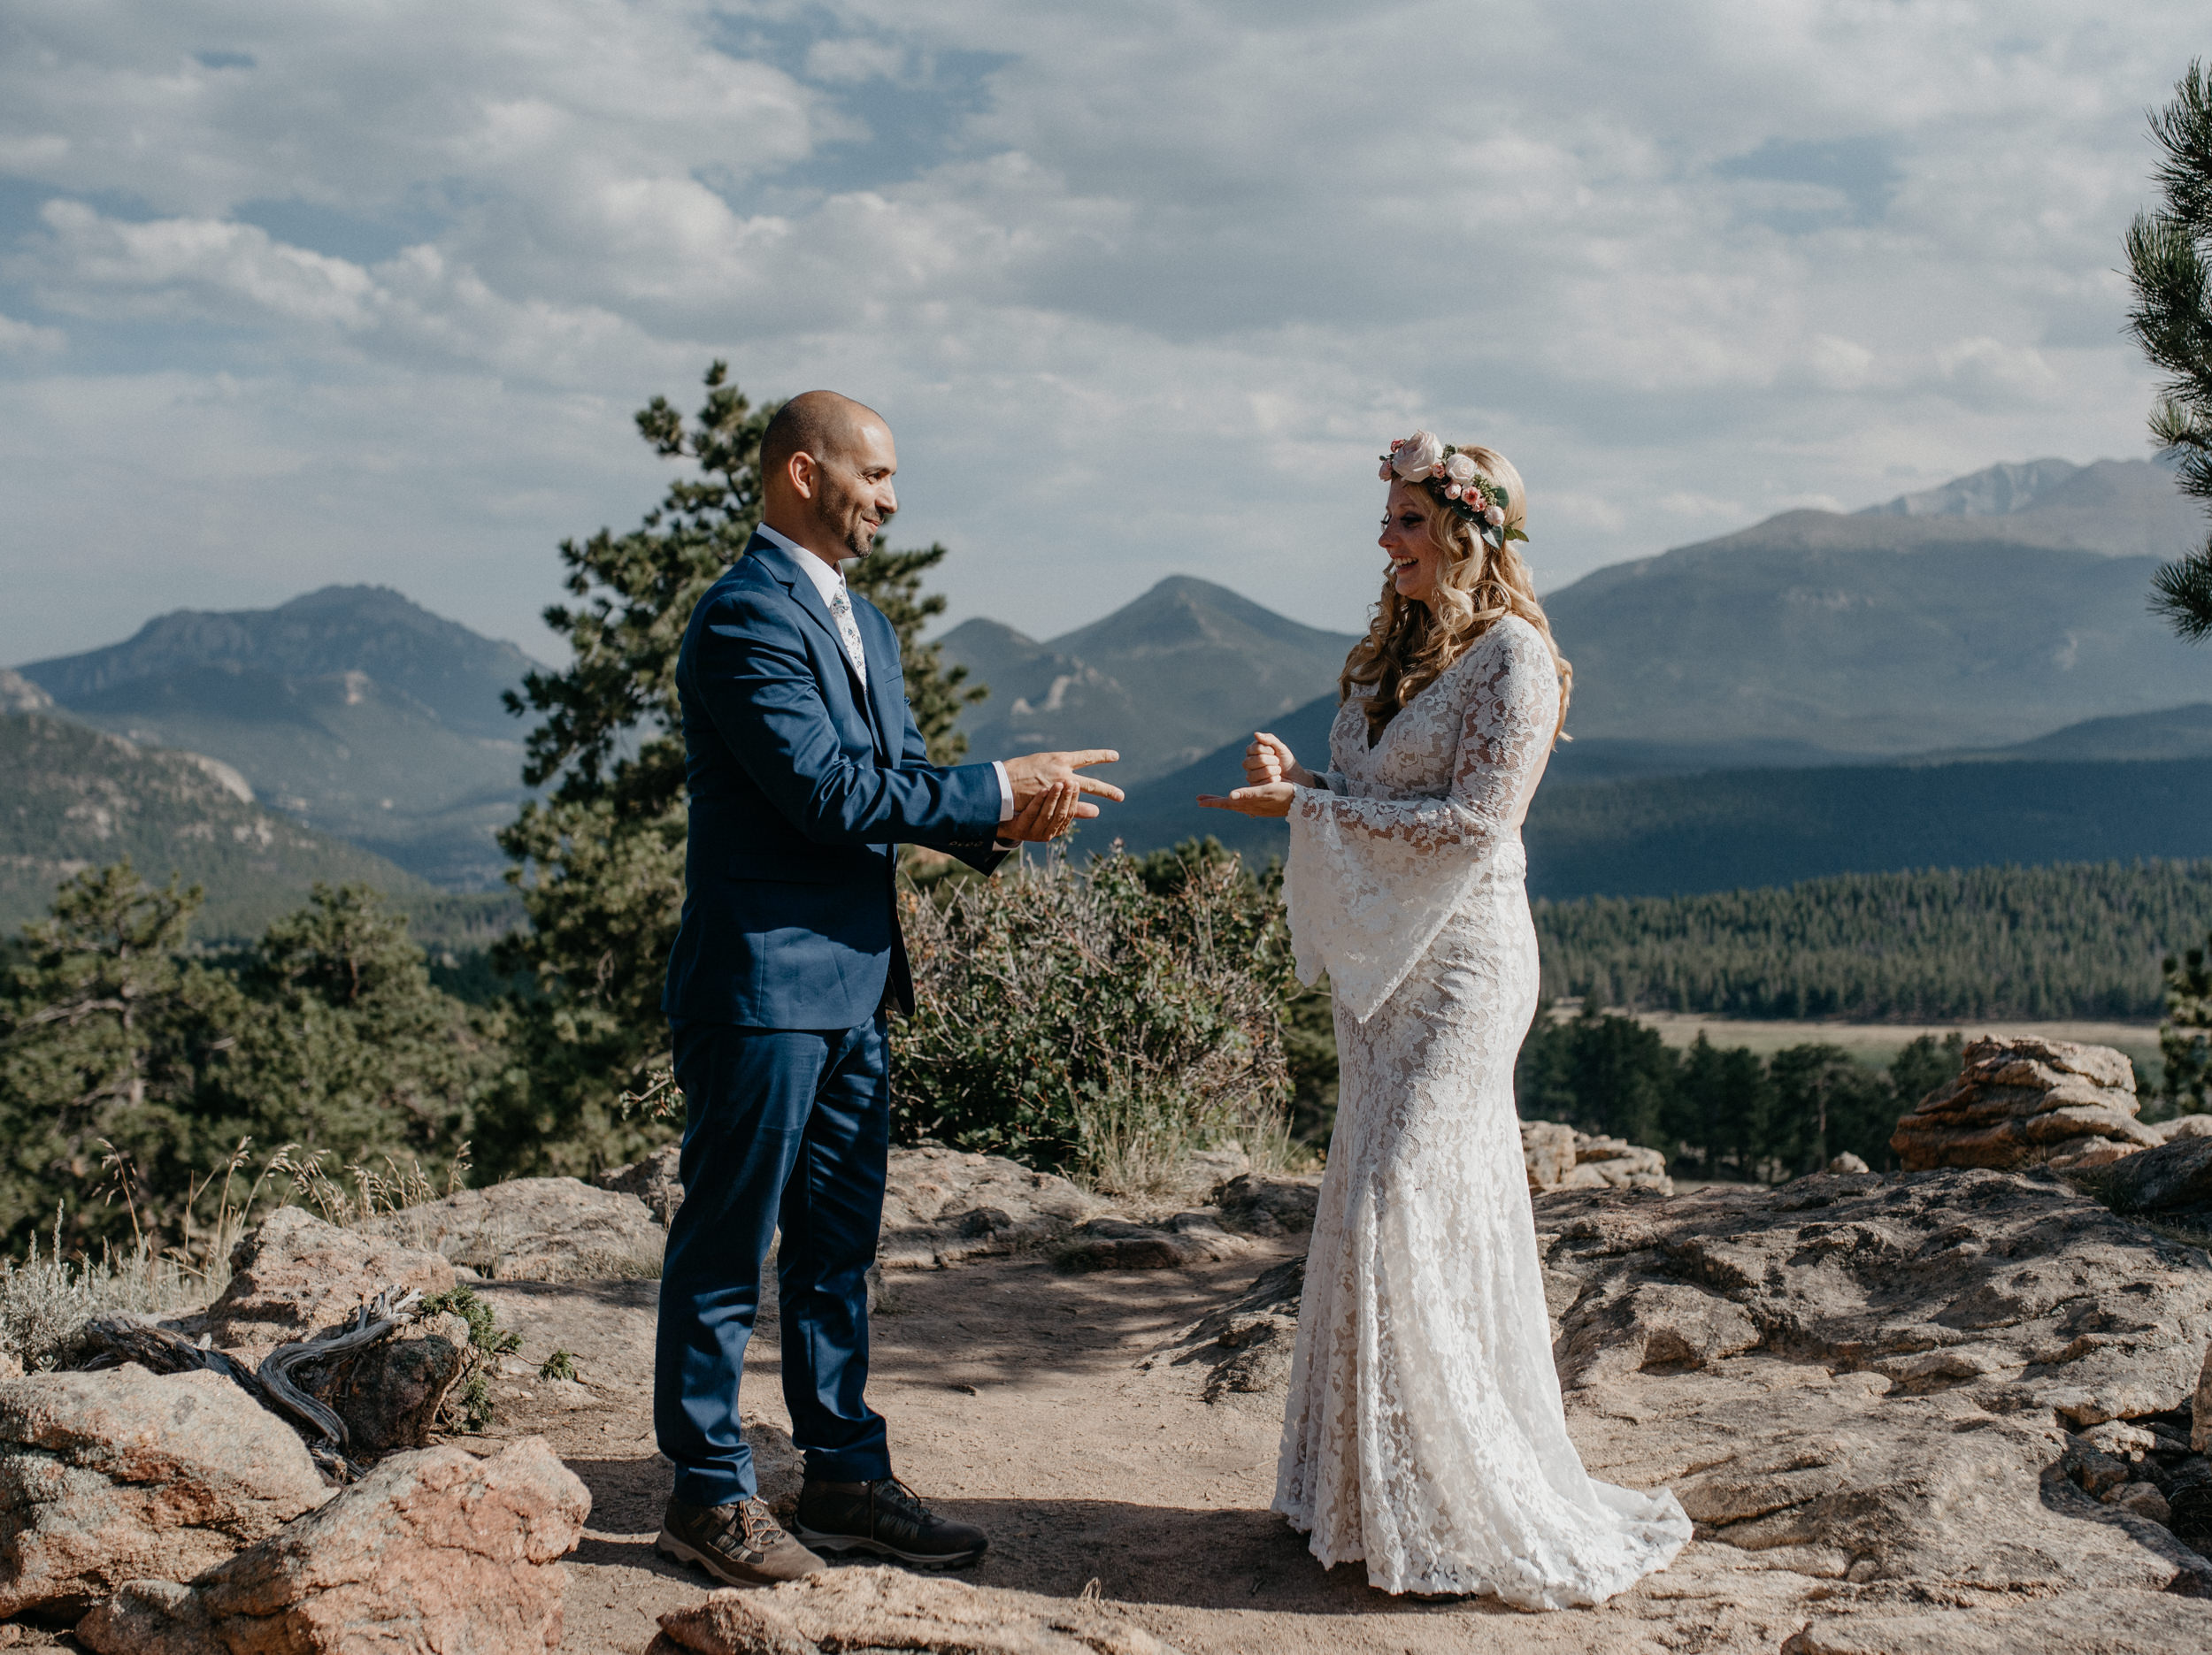 Intimate ceremony at 3M curve in Estes Park. Colorado elopement and wedding photographer.